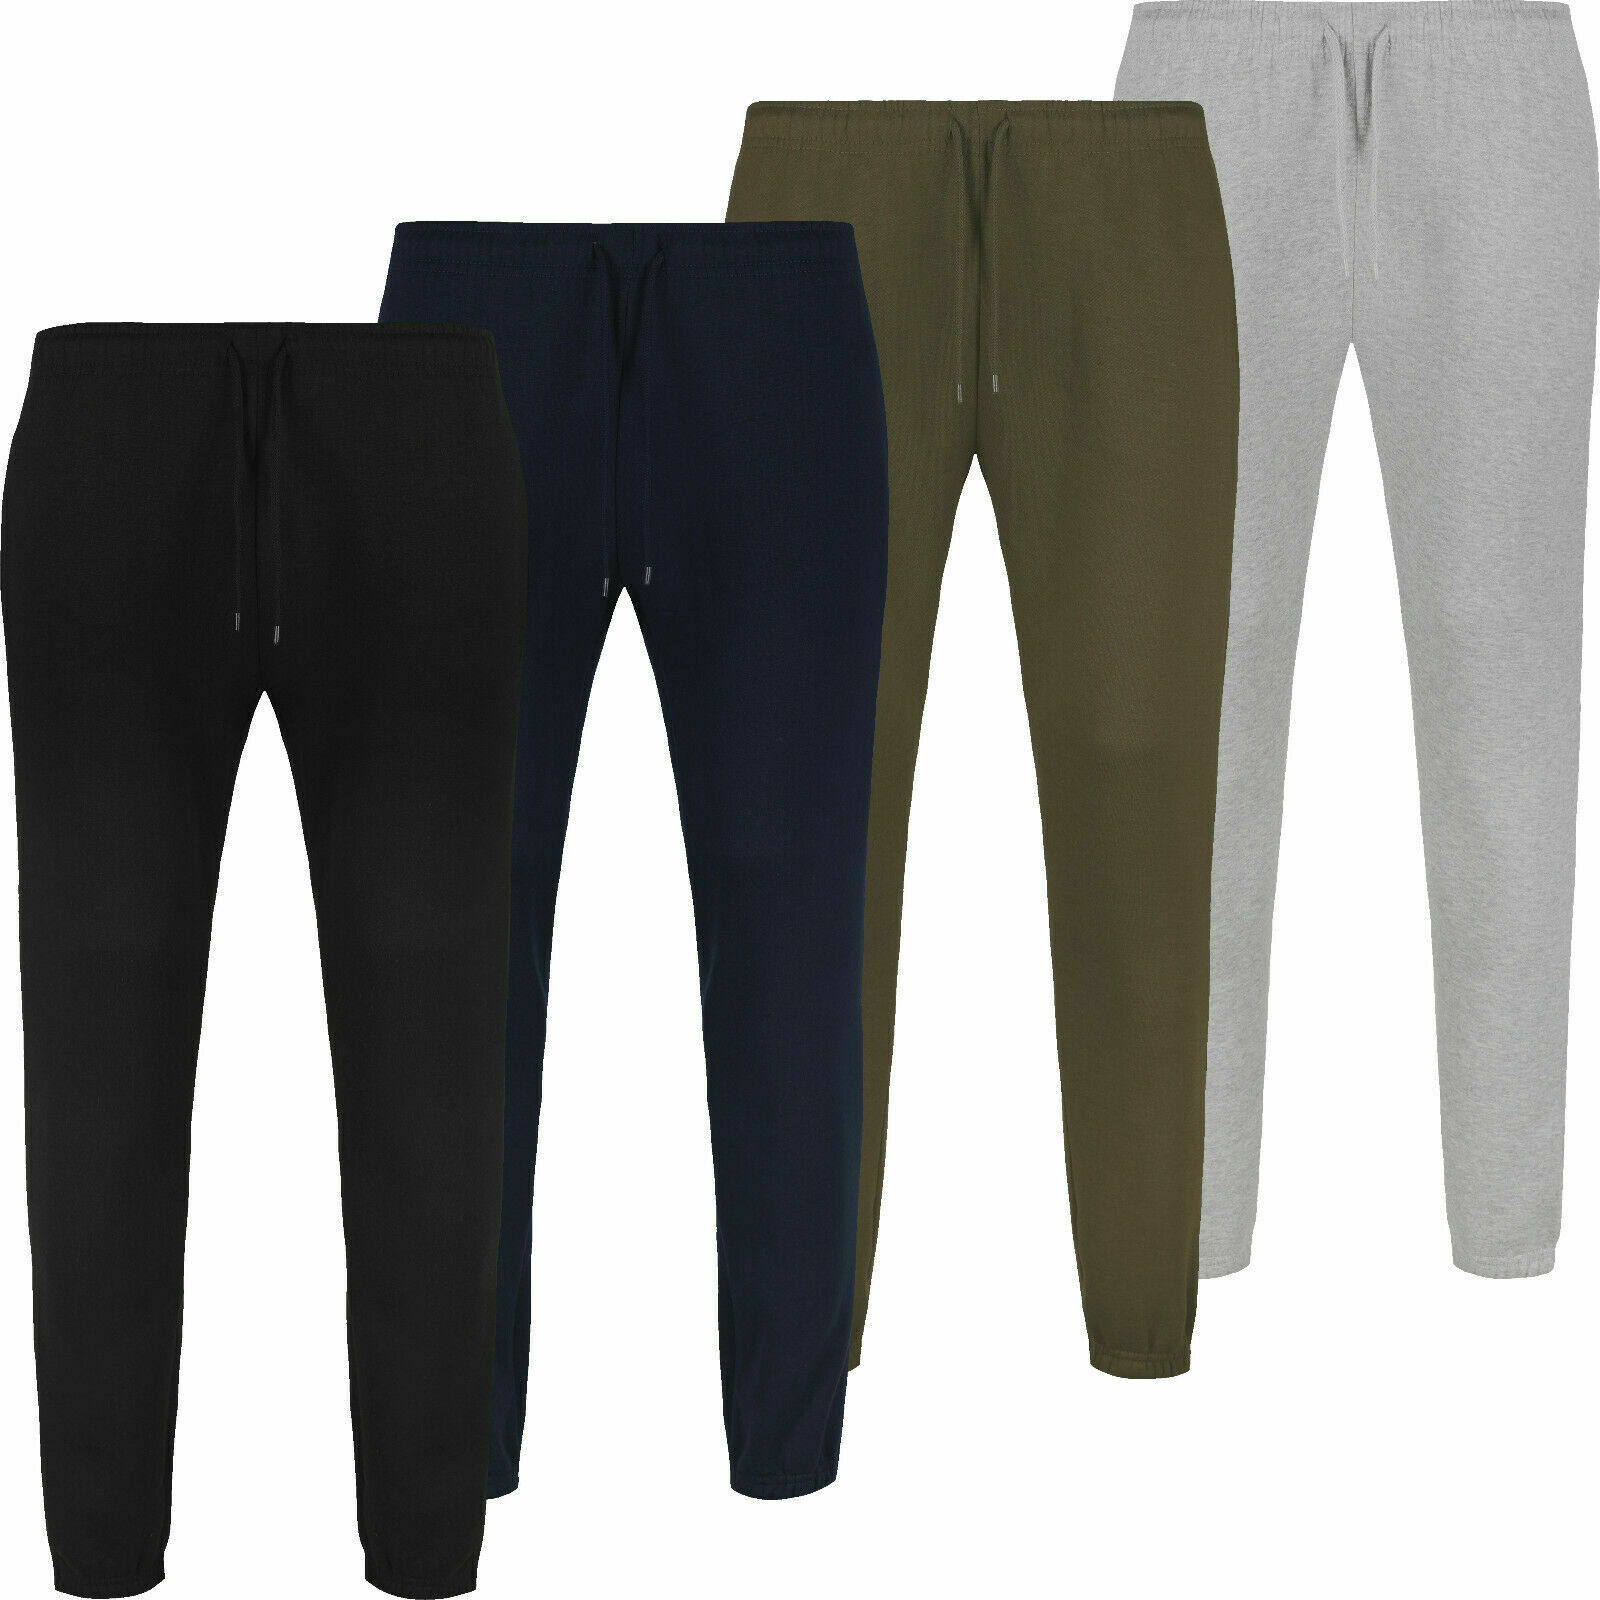 Brand New Men's elasticated waist and cuffed Casual Jogging bottoms S to 5XL